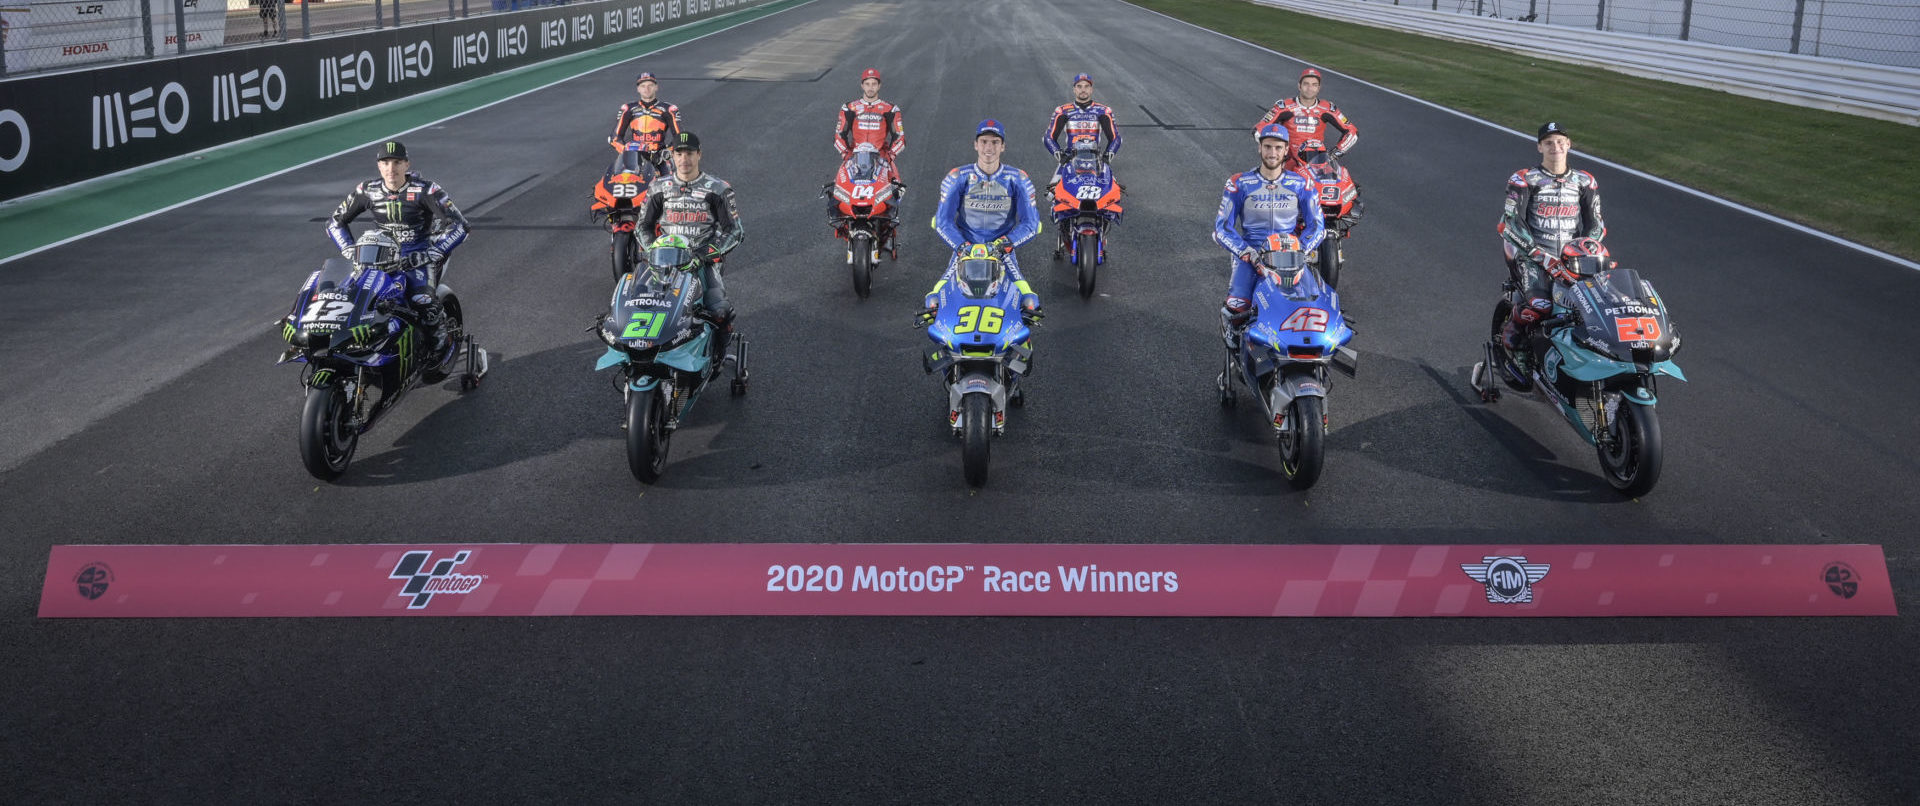 The nine different MotoGP race winners, so far, in 2020: Maverick Vinales (12), Brad Binder (33), Franco Morbidelli (21), Andrea Dovizioso (04), Joan Mir (36), Miguel Oliveira (88), Alex Rins (42), and Danilo Petrucci (9). Photo courtesy Dorna.